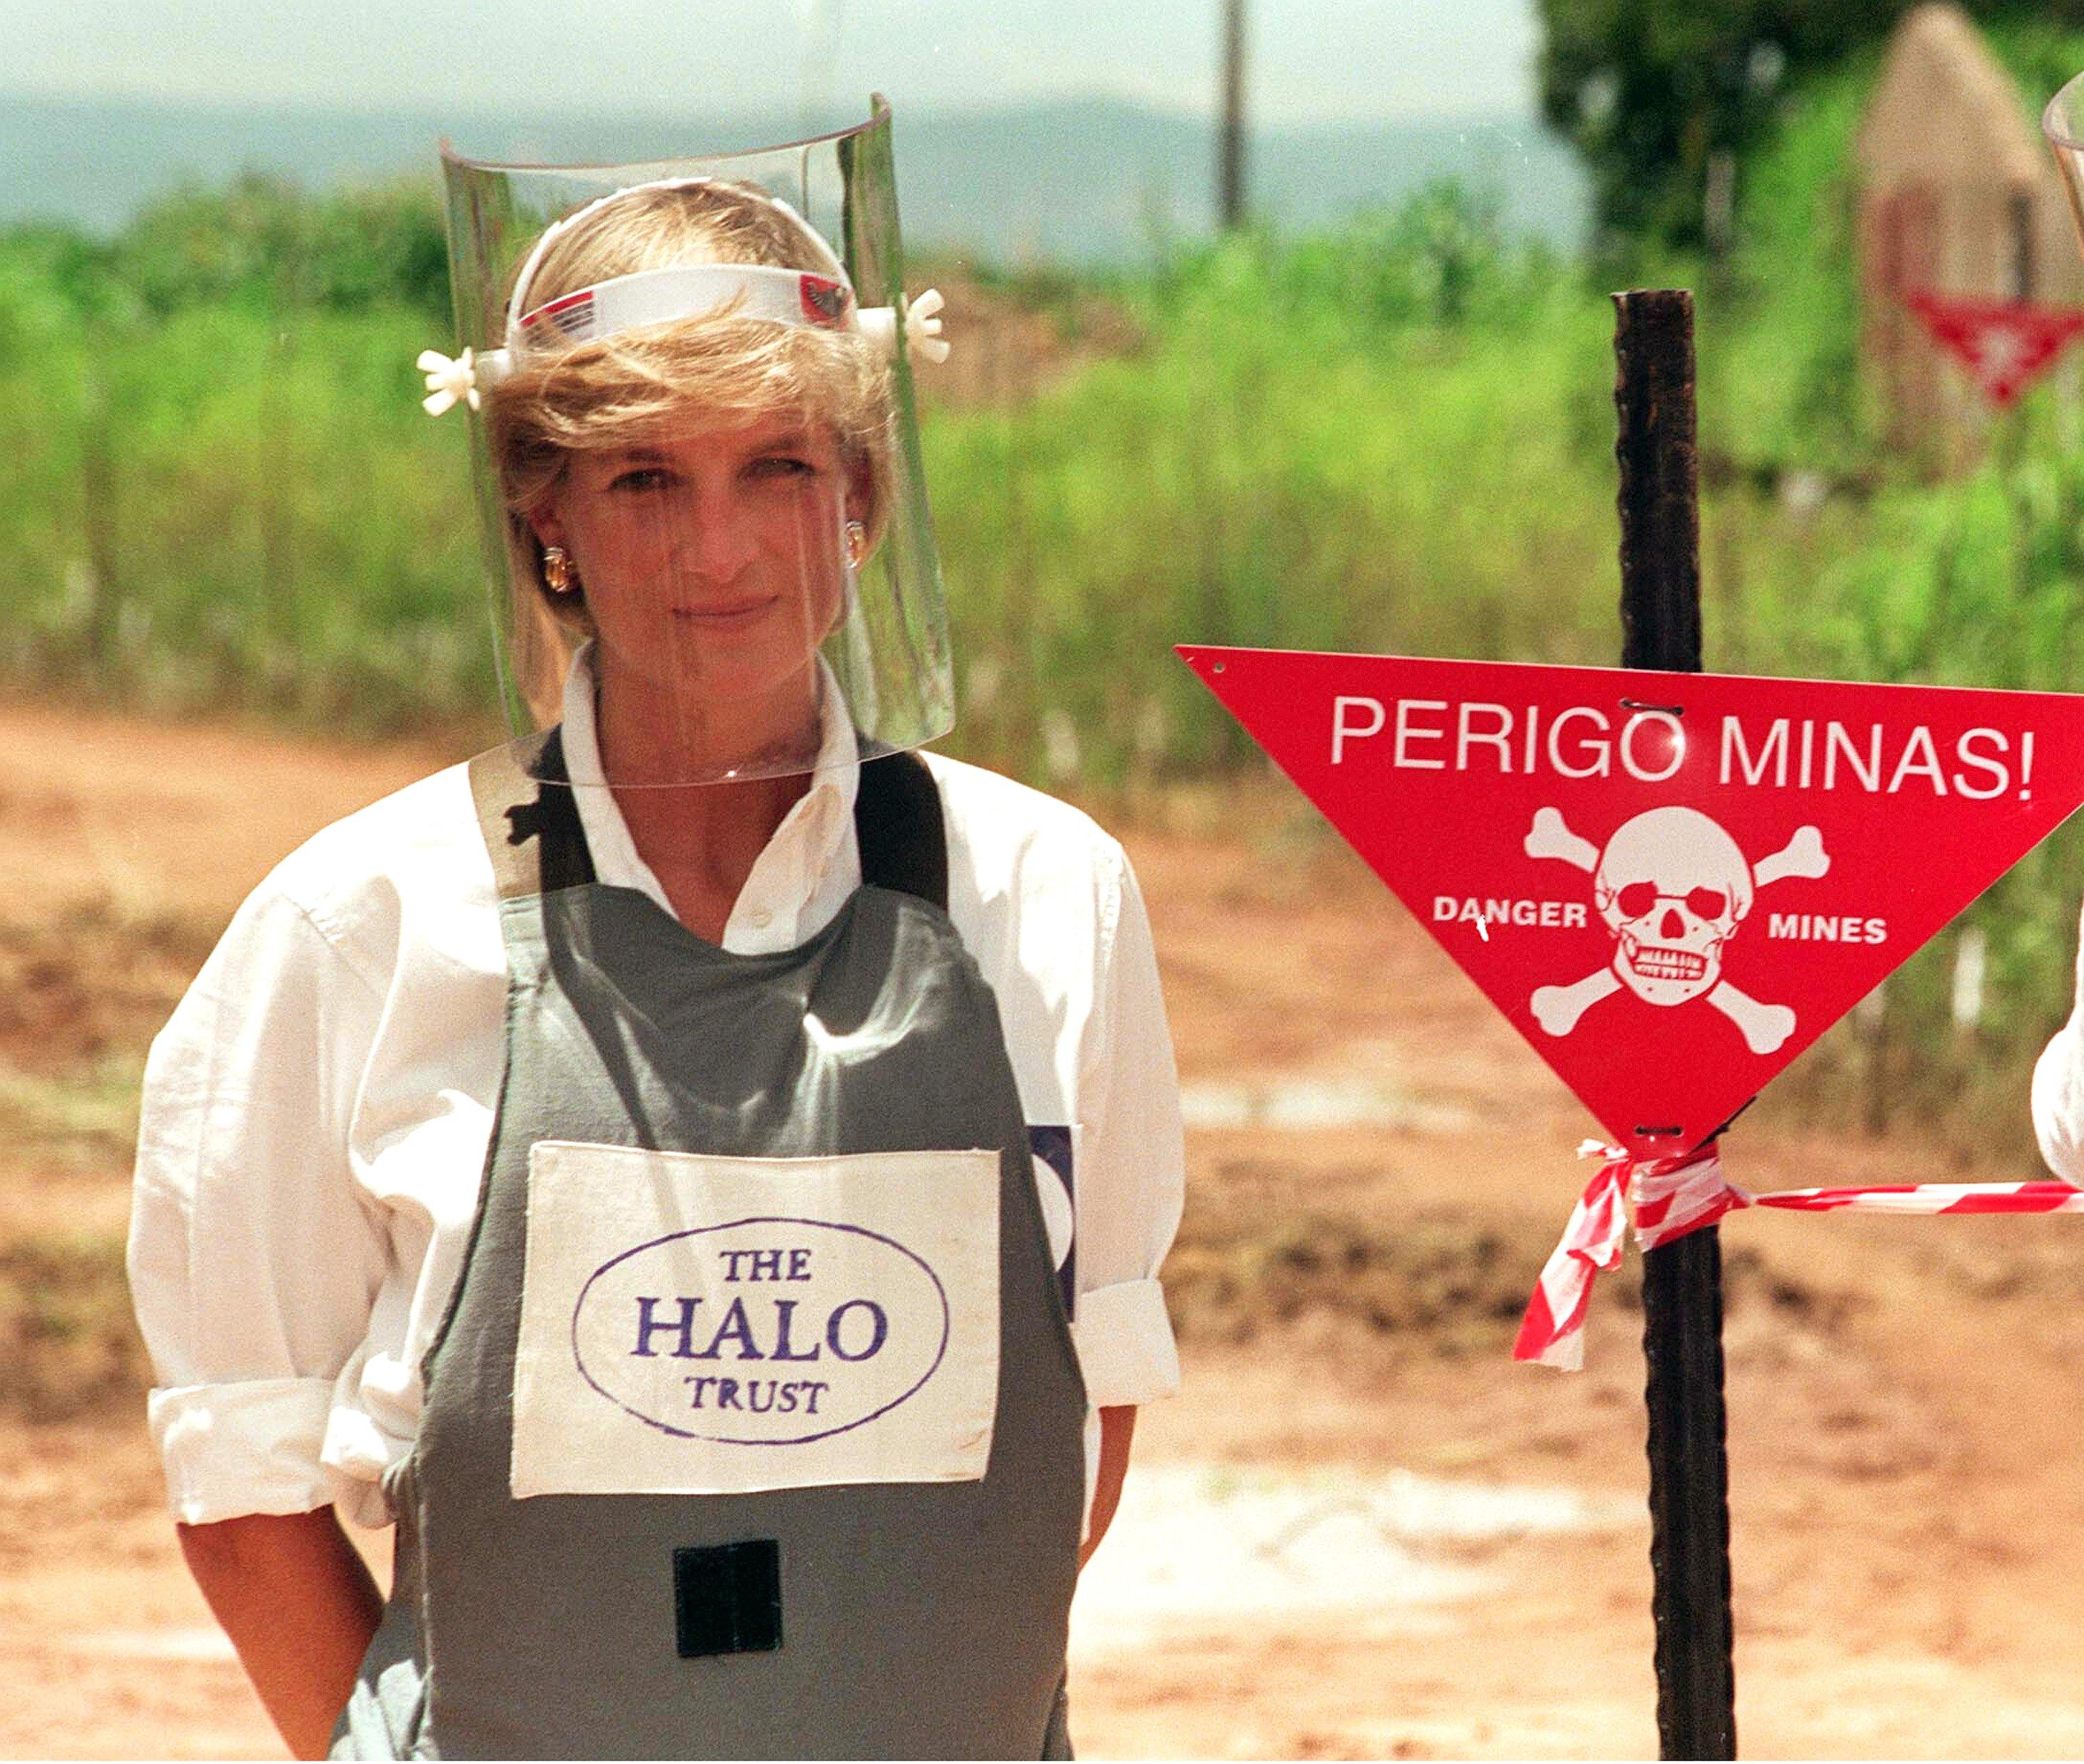 Princess Diana's landmine visit is still remembered - over 20 years later [Photo: Getty]